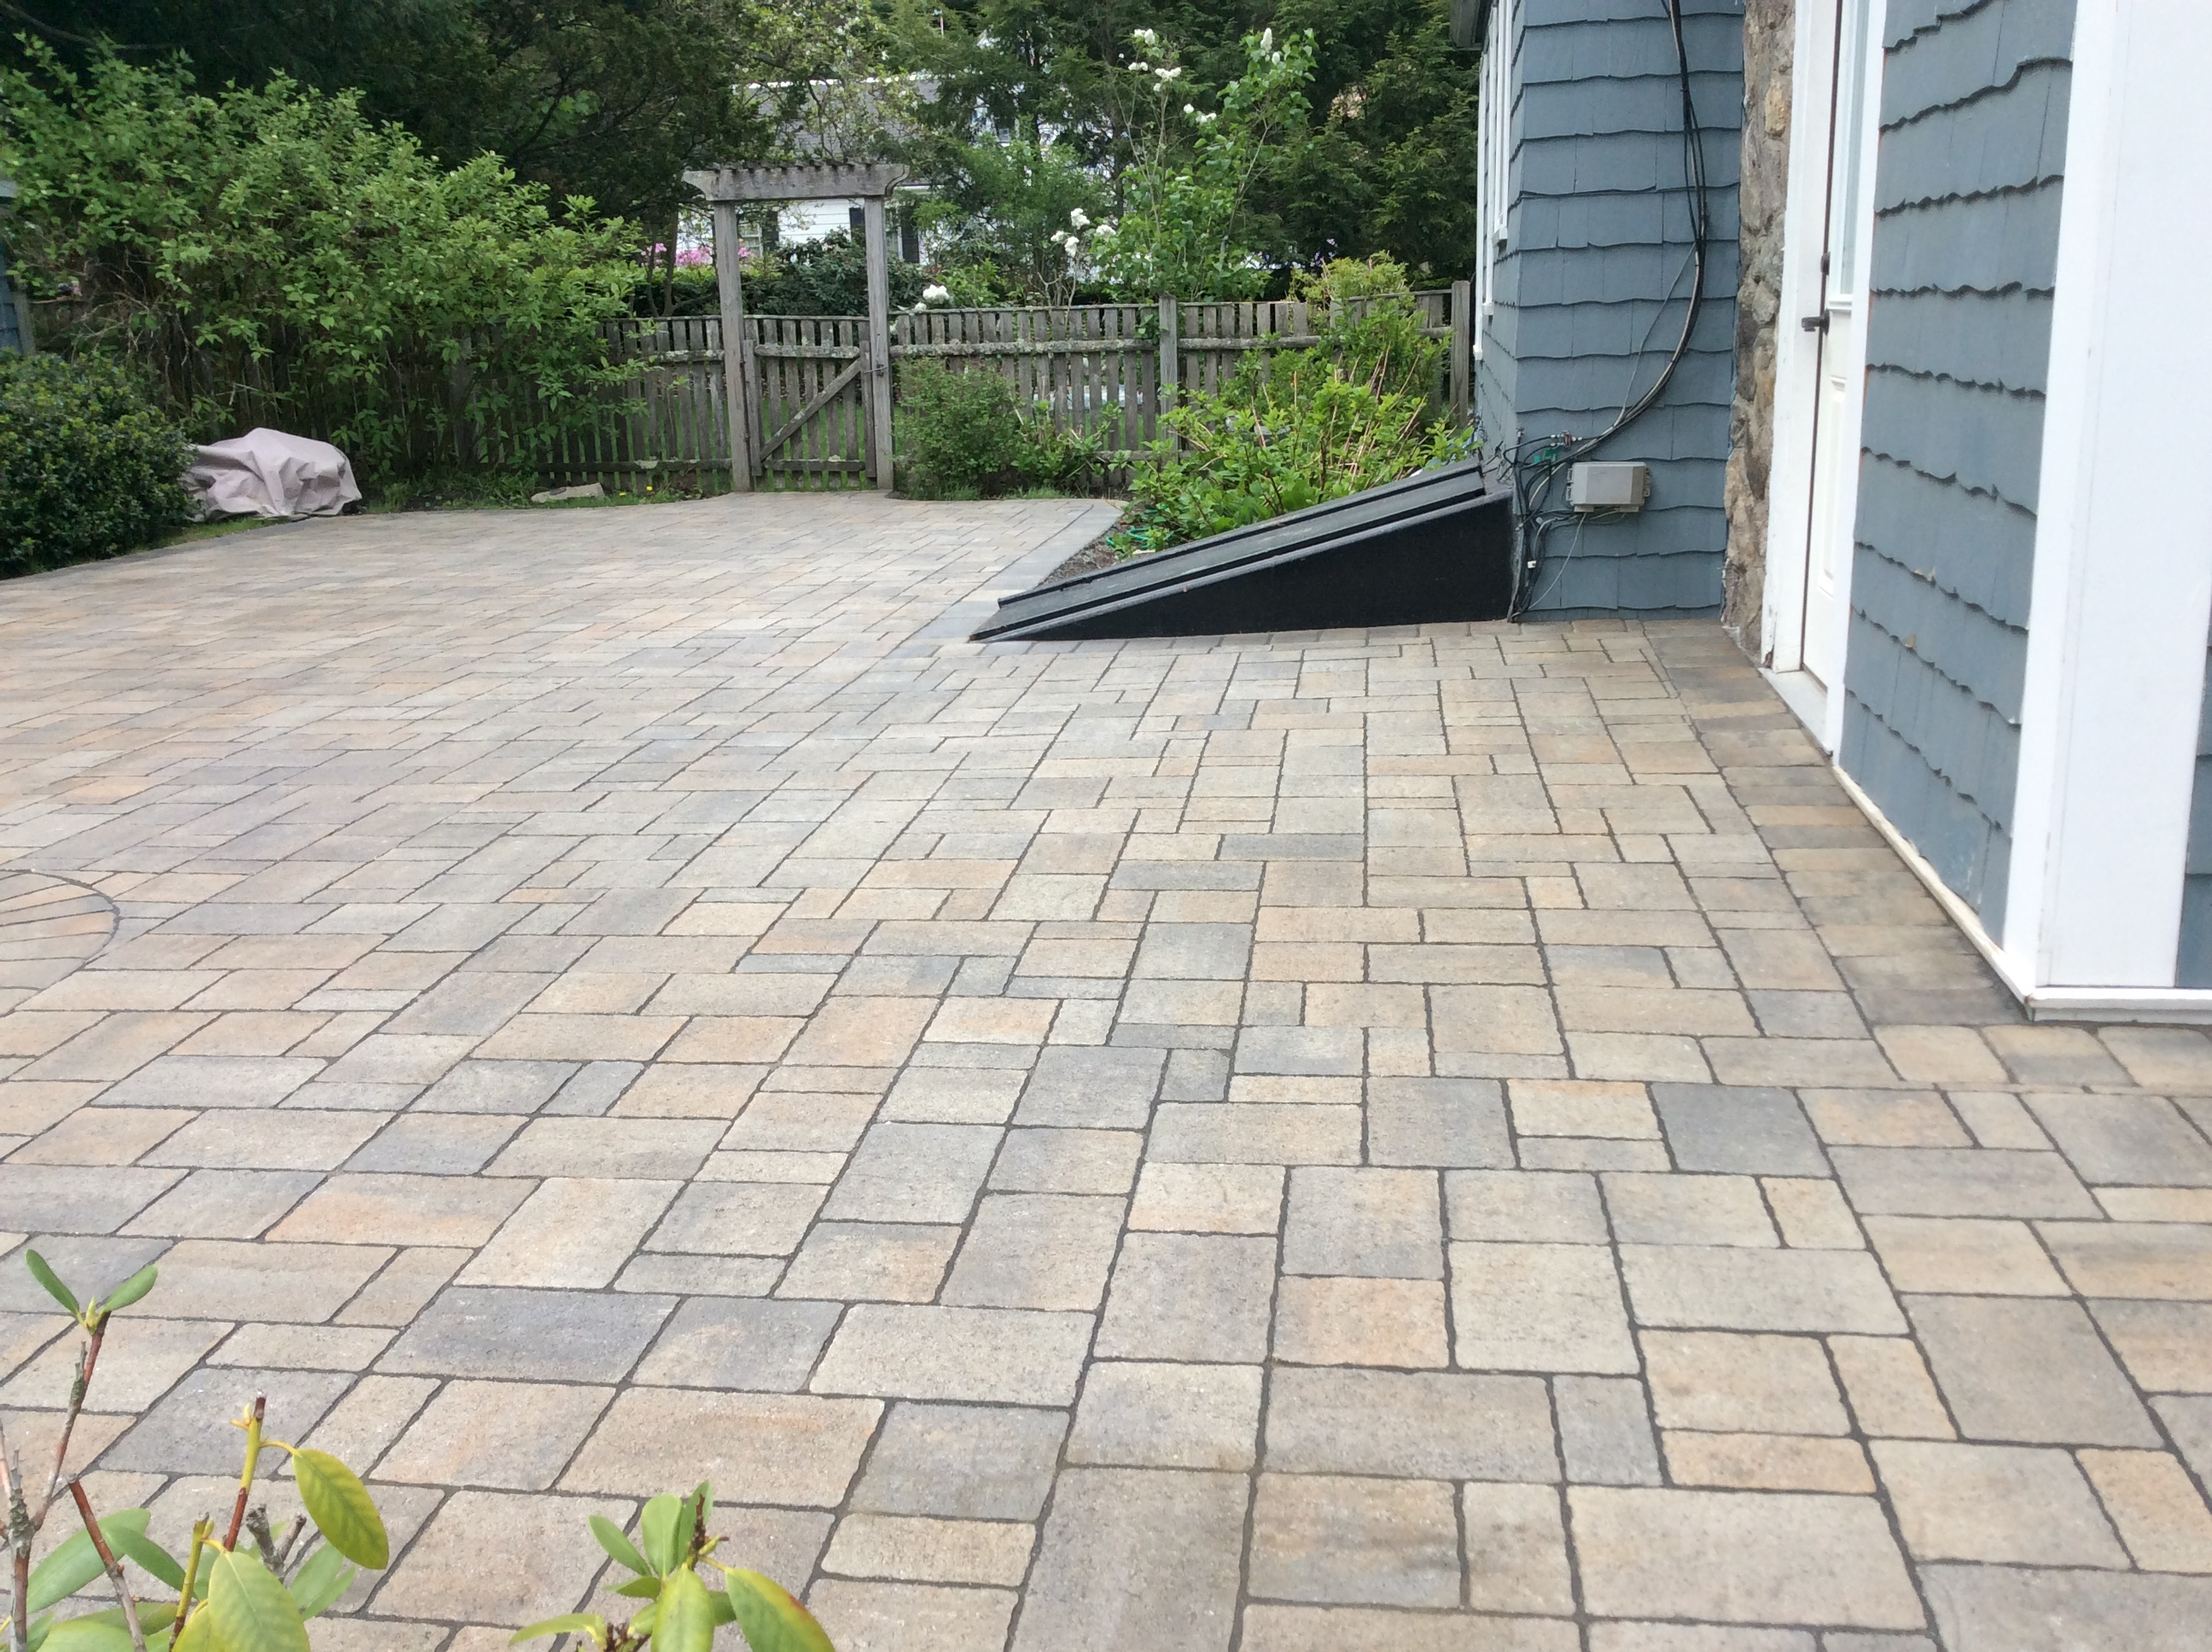 How To Install Interlocking Pavers For Your Patio